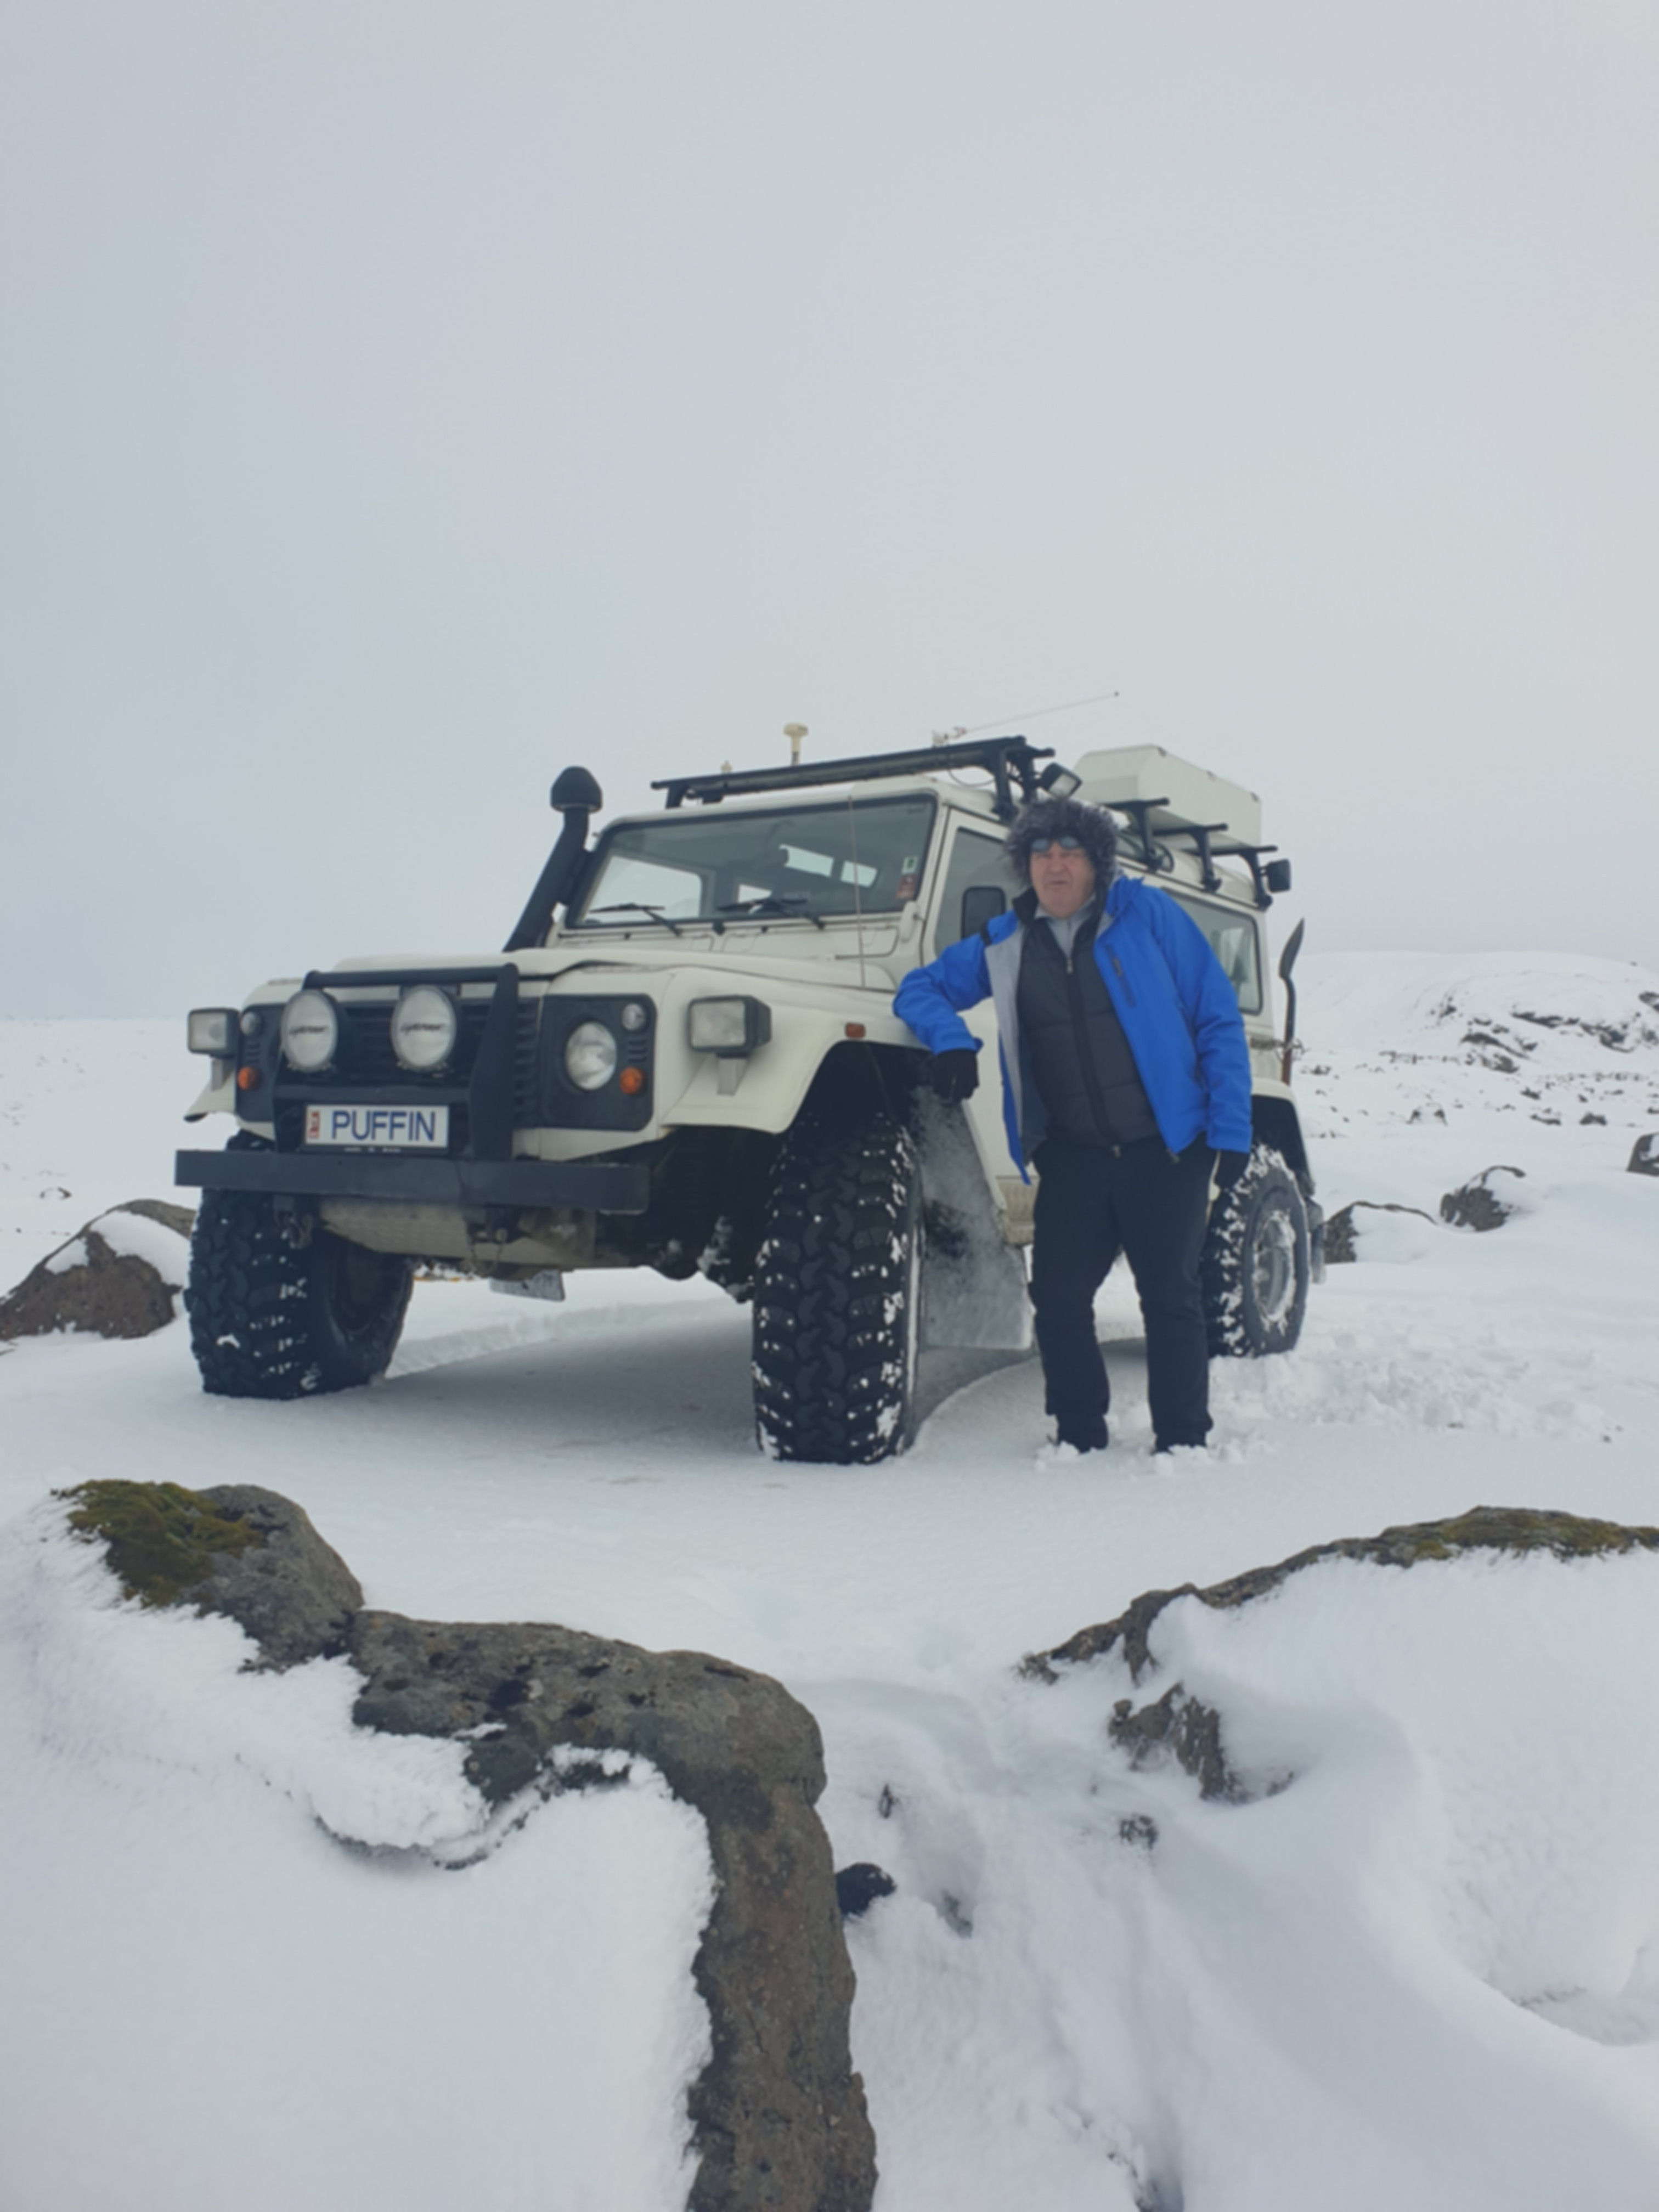 Our Puffin -Land Rover Defender